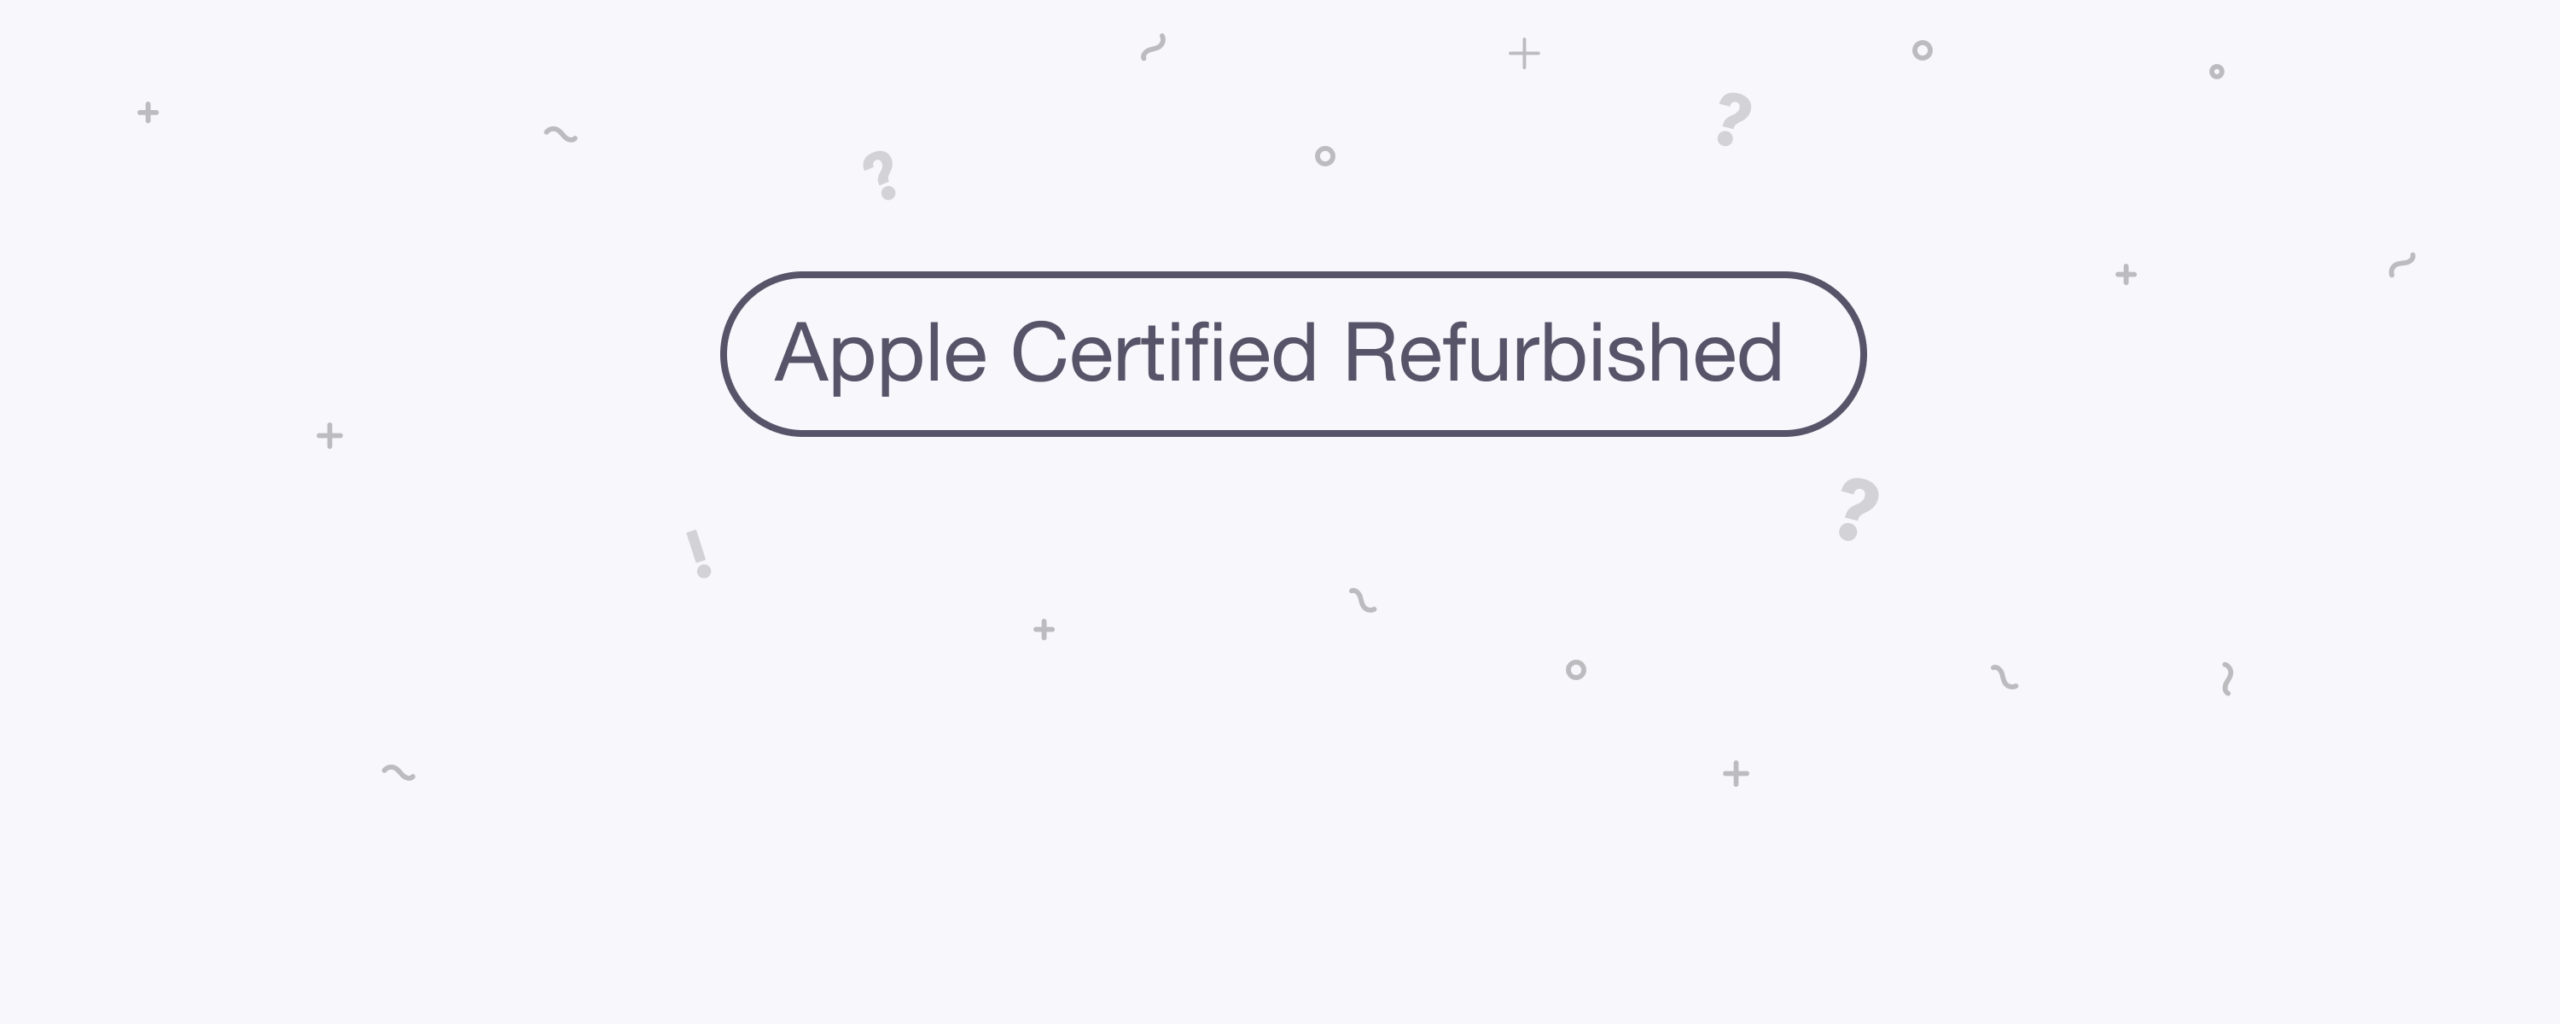 What is Apple Certified Refurbished and Why Does it Matter?